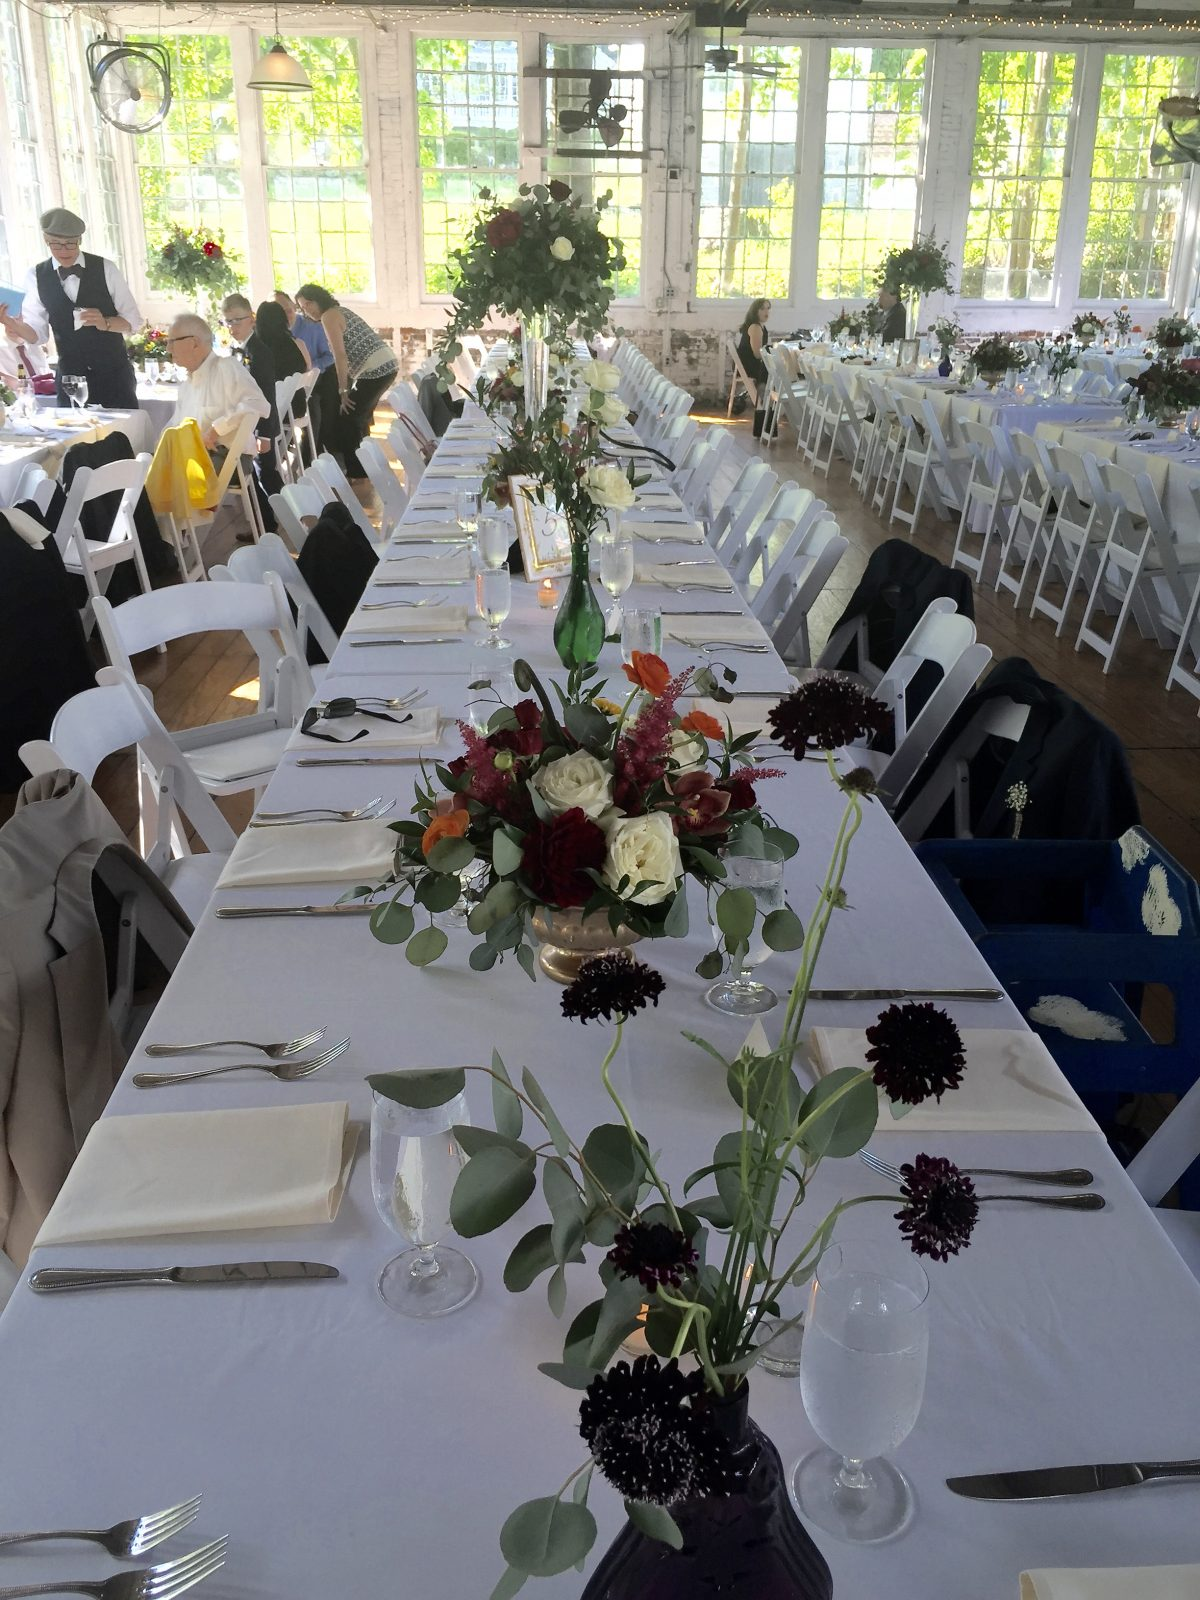 Family Style Tables at Wedding with Fresh Flowers and Vintage Glass Vases